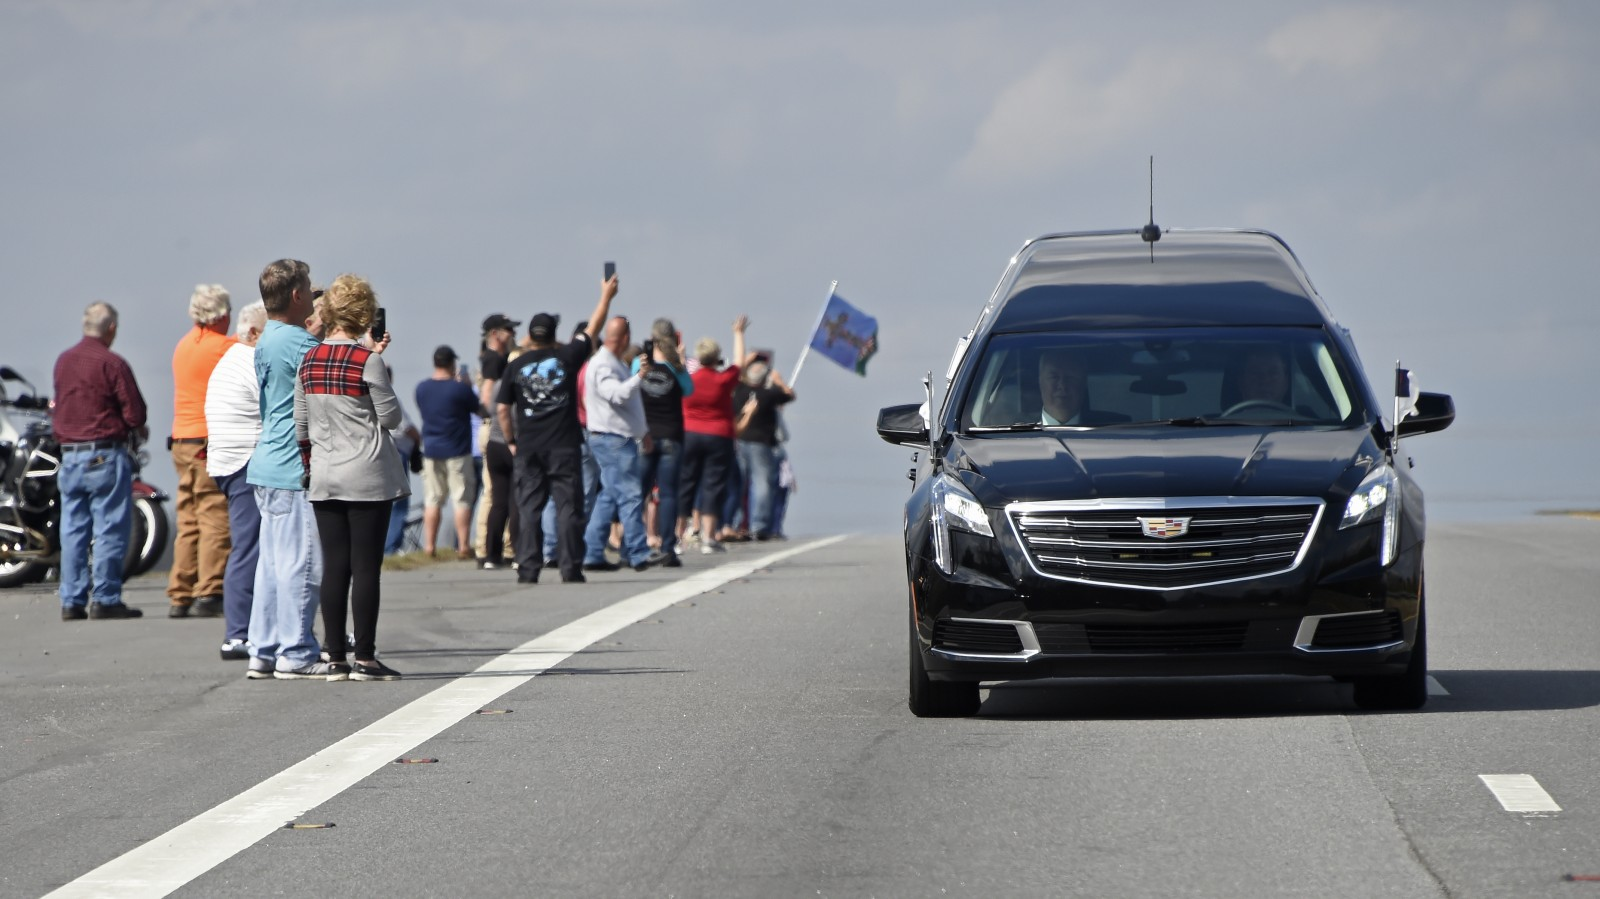 People watch as the hearse carrying the body of Billy Graham leaves Hickory, N.C., as it drives toward the Billy Graham Library Saturday, Feb. 24, 2018. Graham's body was brought to his hometown of Charlotte on Saturday, Feb. 24, as part of a procession expected to draw crowds of well-wishers. (Kathy Kmonicek/pool photo